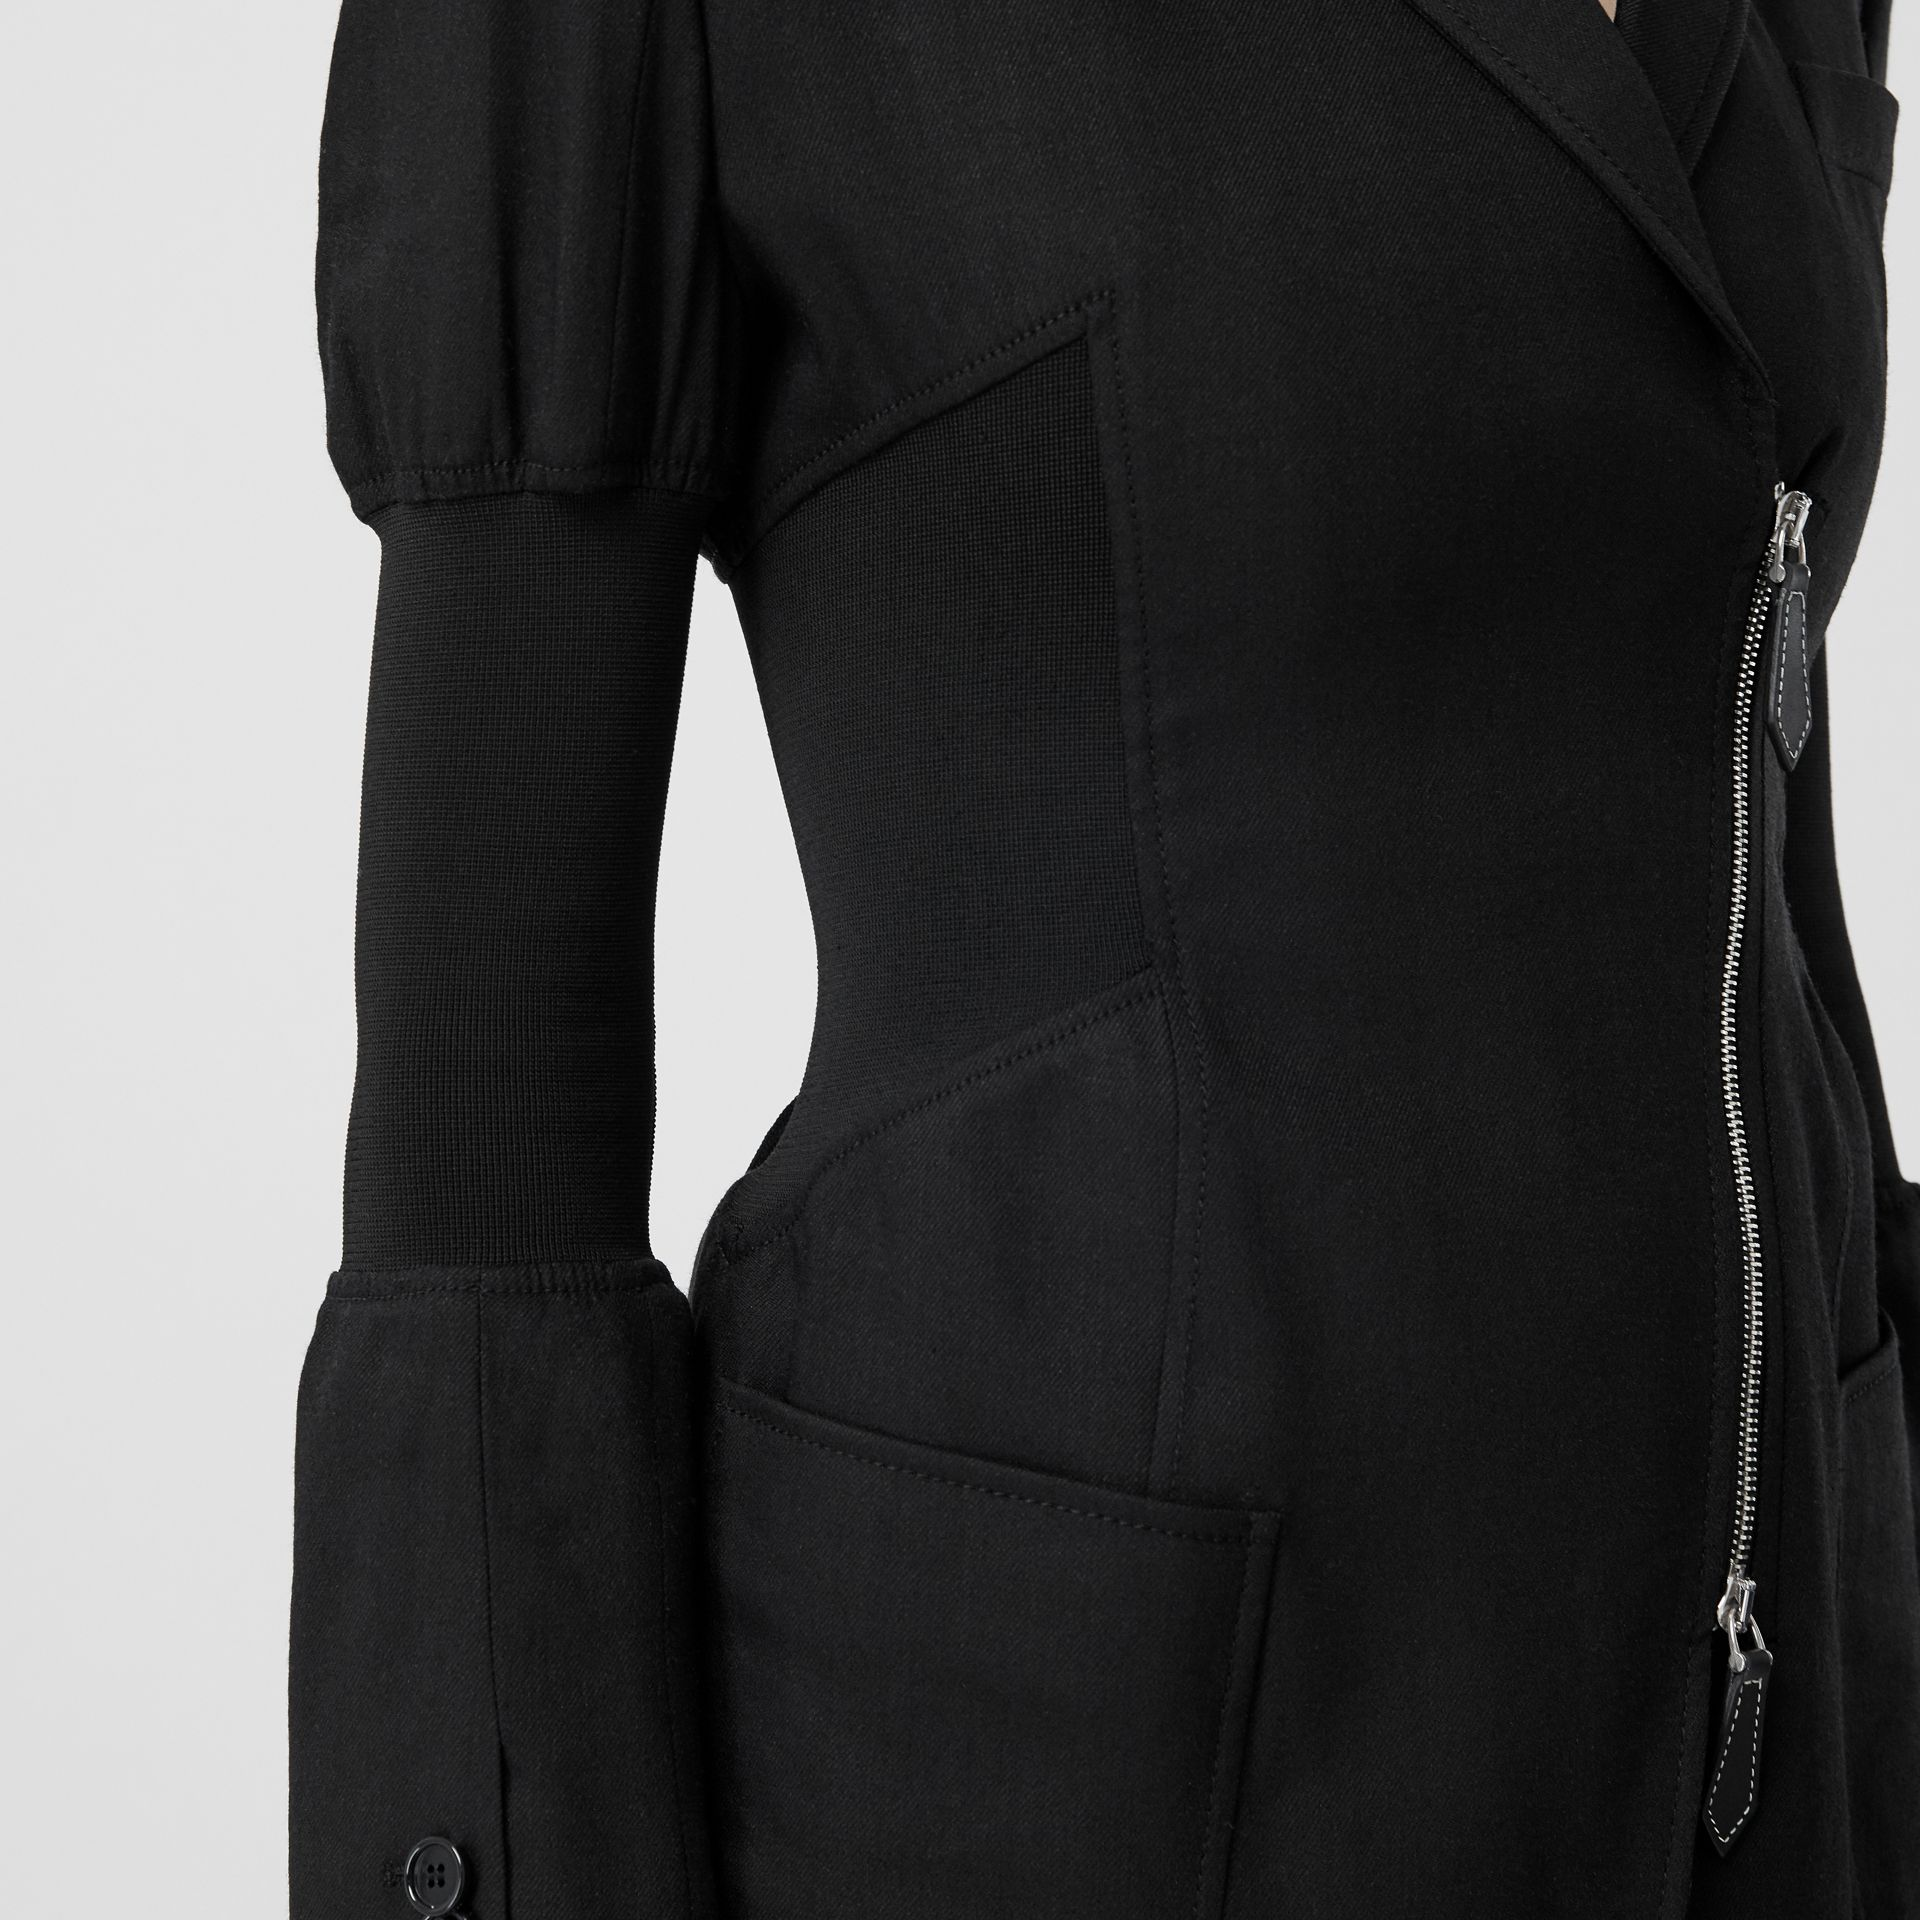 Technical Twill Reconstructed Blazer in Black - Women | Burberry Australia - gallery image 5